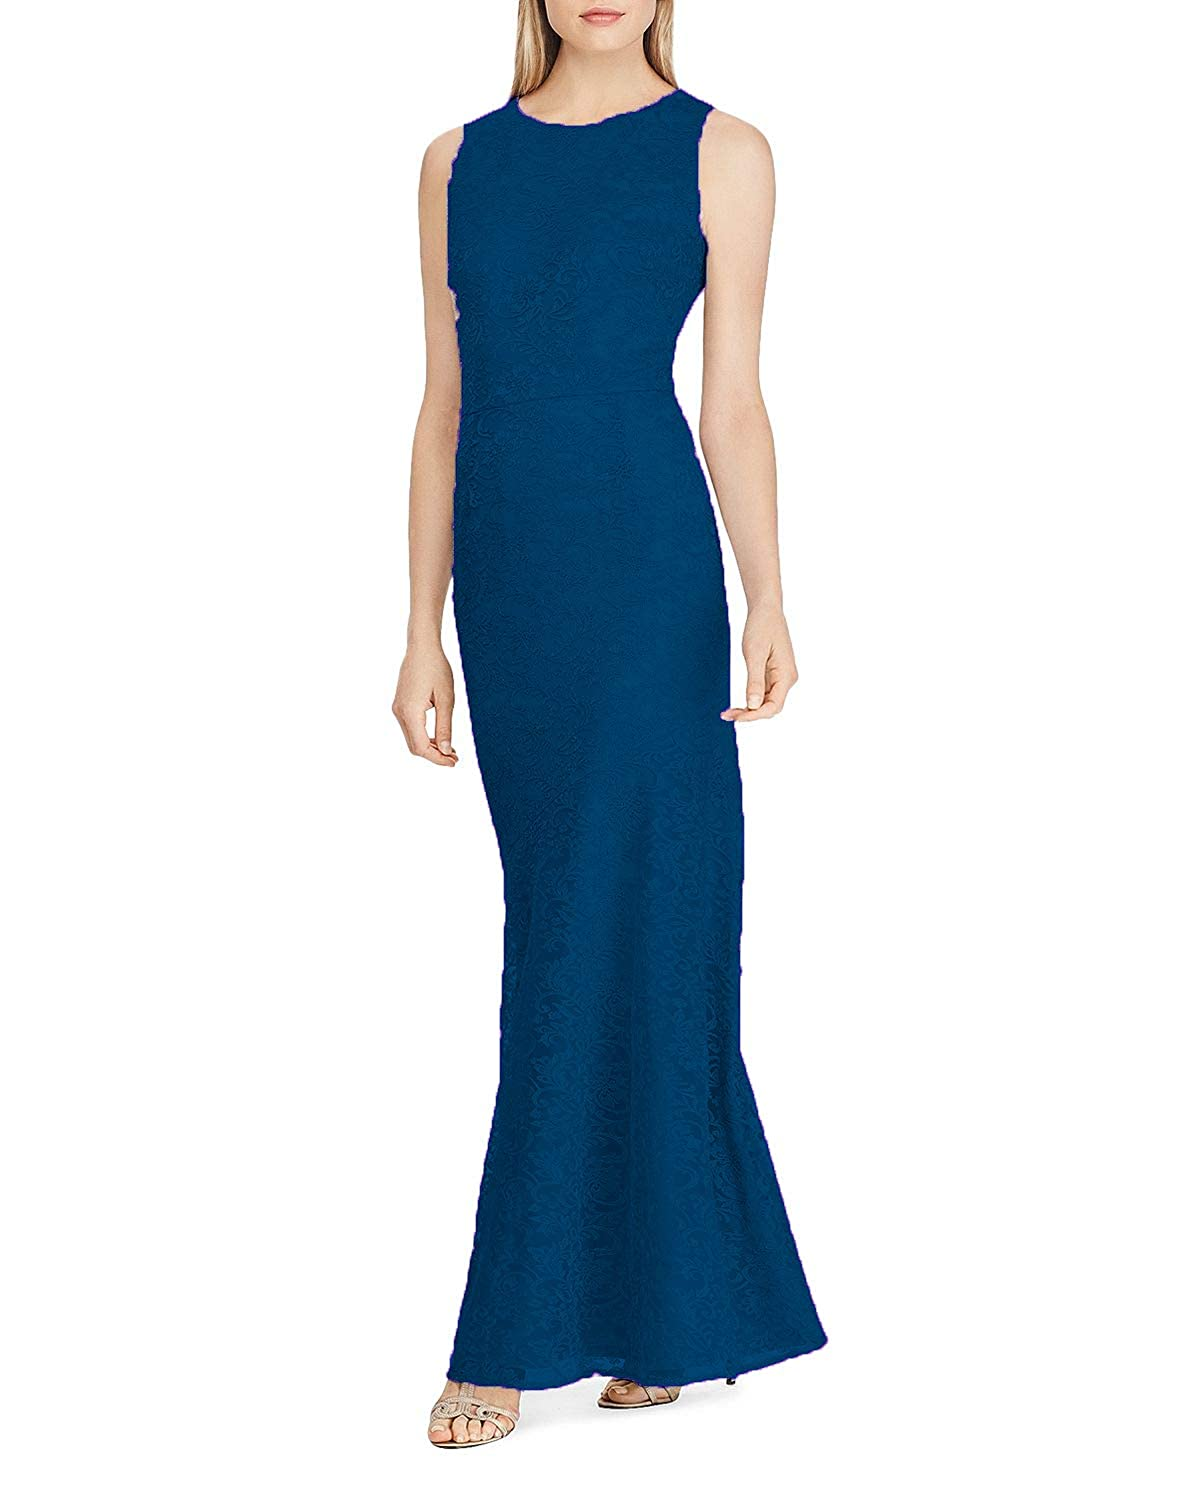 bluee Wanshaqin Women's Embroidered Mesh Gown for Evening Party Sexy Bias Cut Formal Wedding Bridesmaid Dress